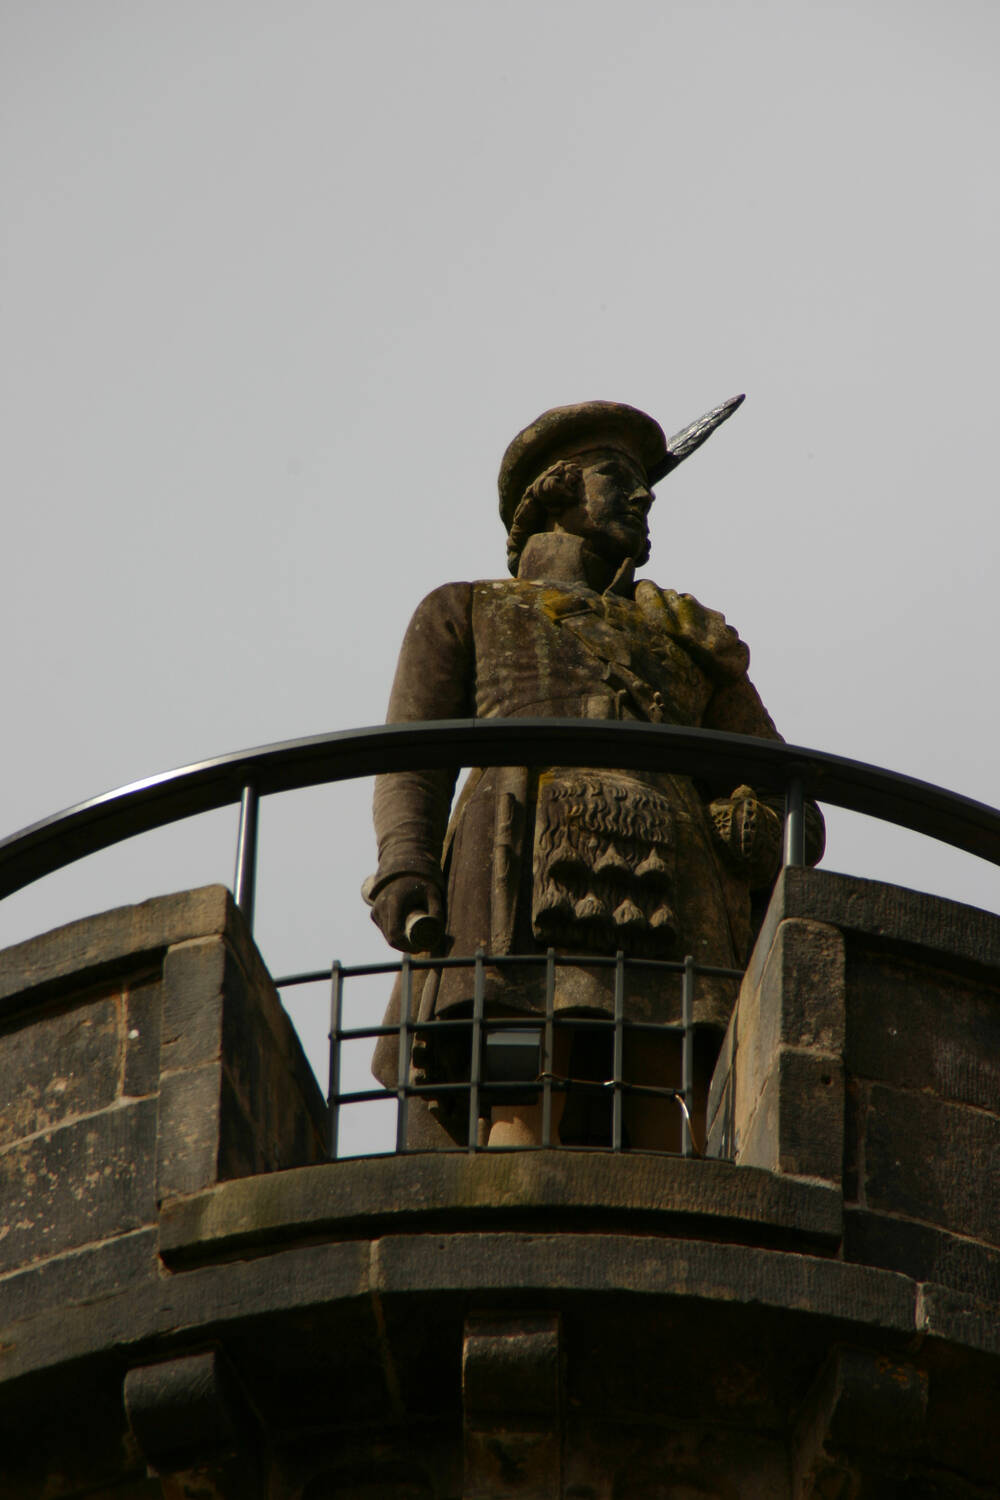 The statue thought to be Bonnie Prince Charlie on top of the monument